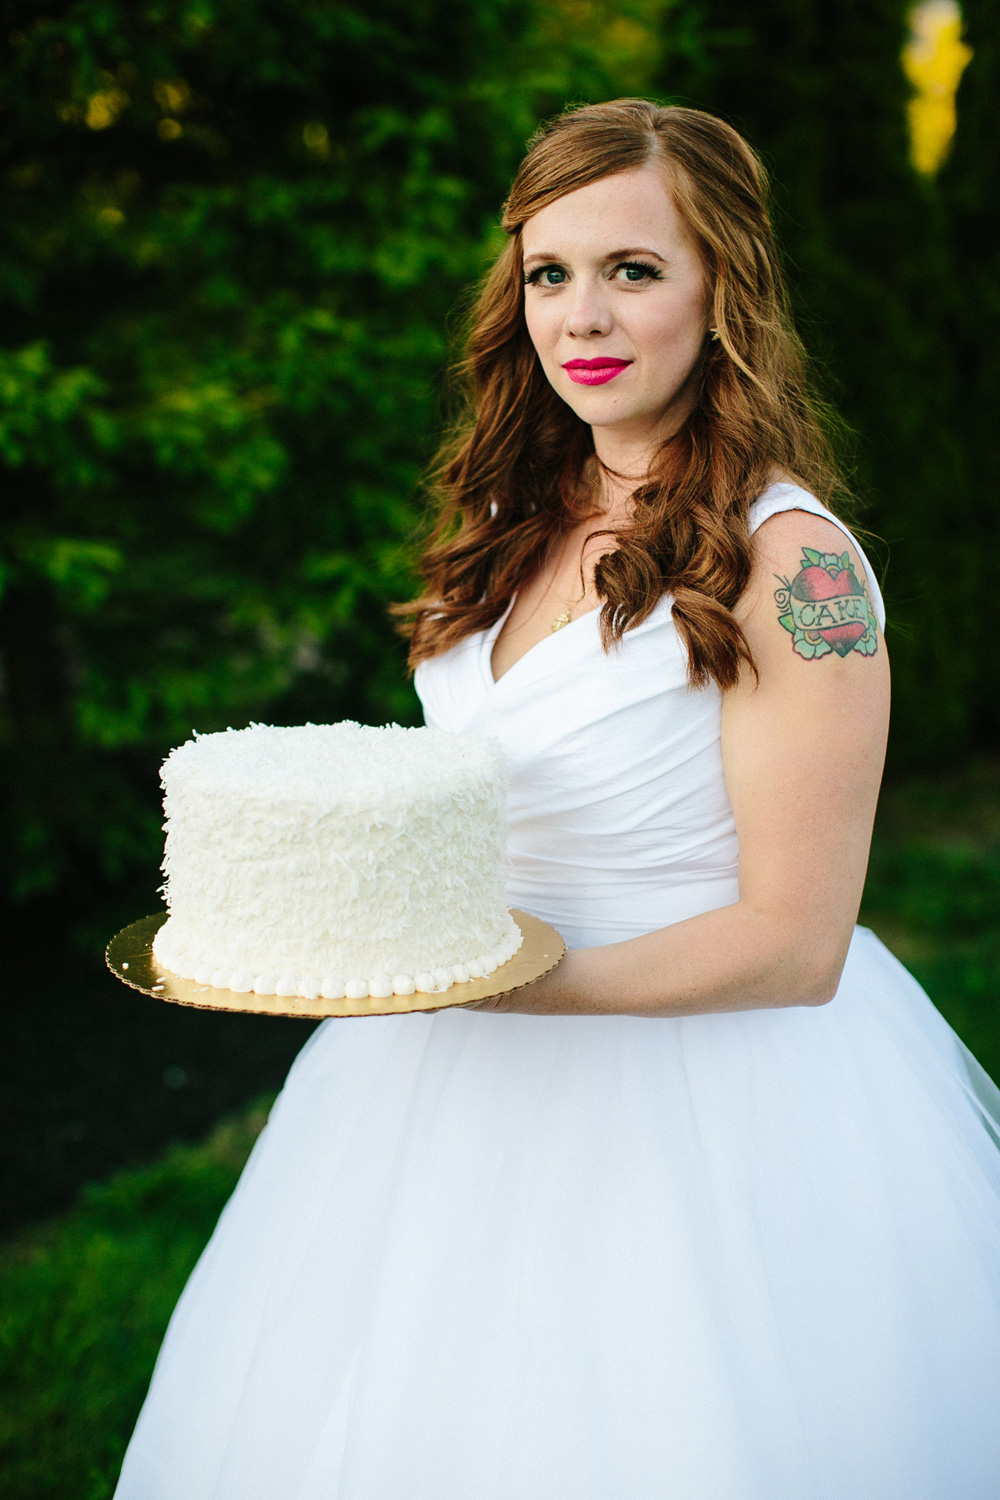 052-creative-tattooed-bridal-portrait-with-cake.jpg